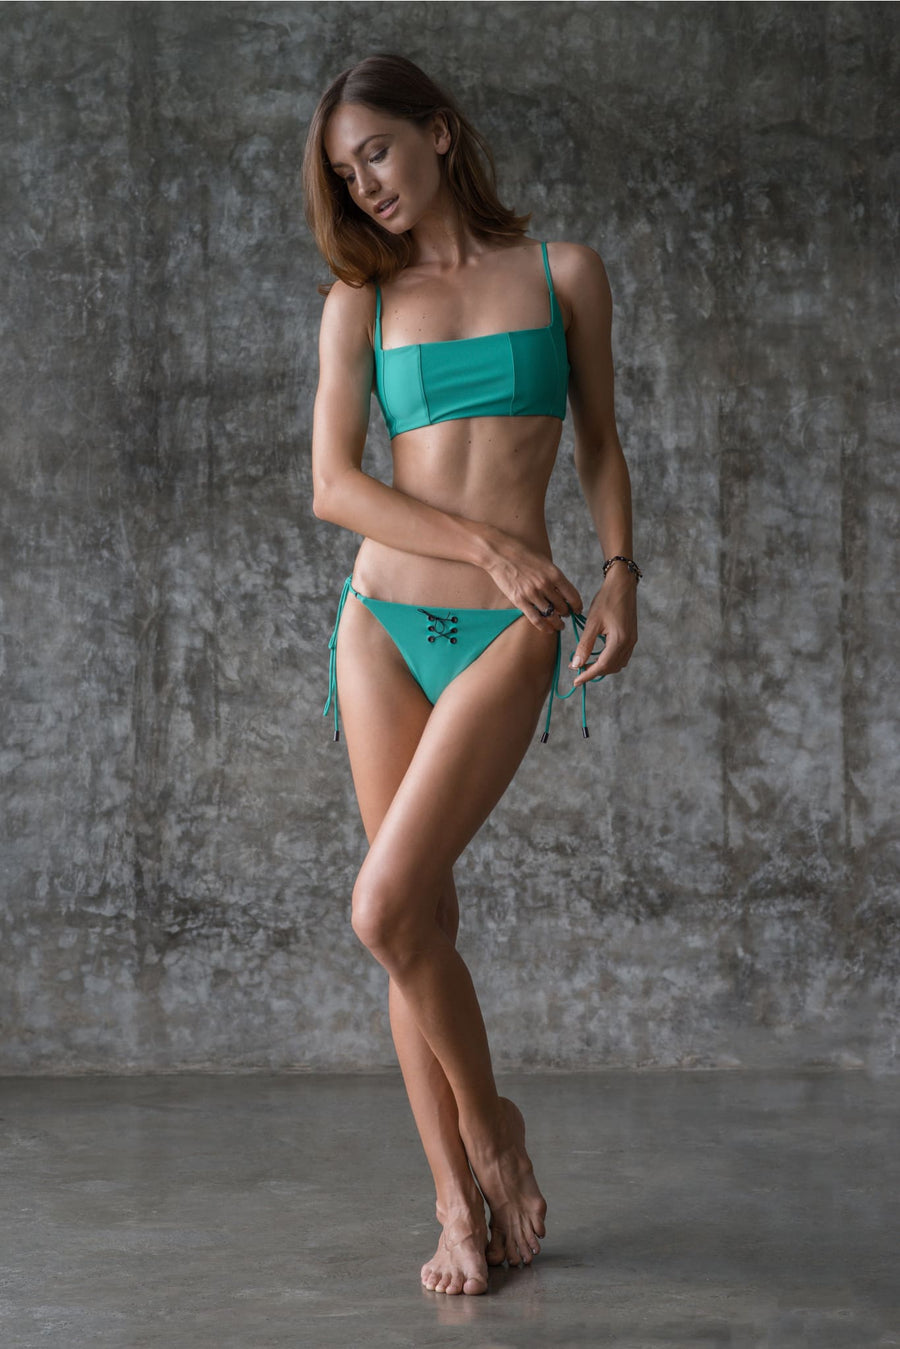 NANCY TOP | ENVY GREEN - seamoneswimwear